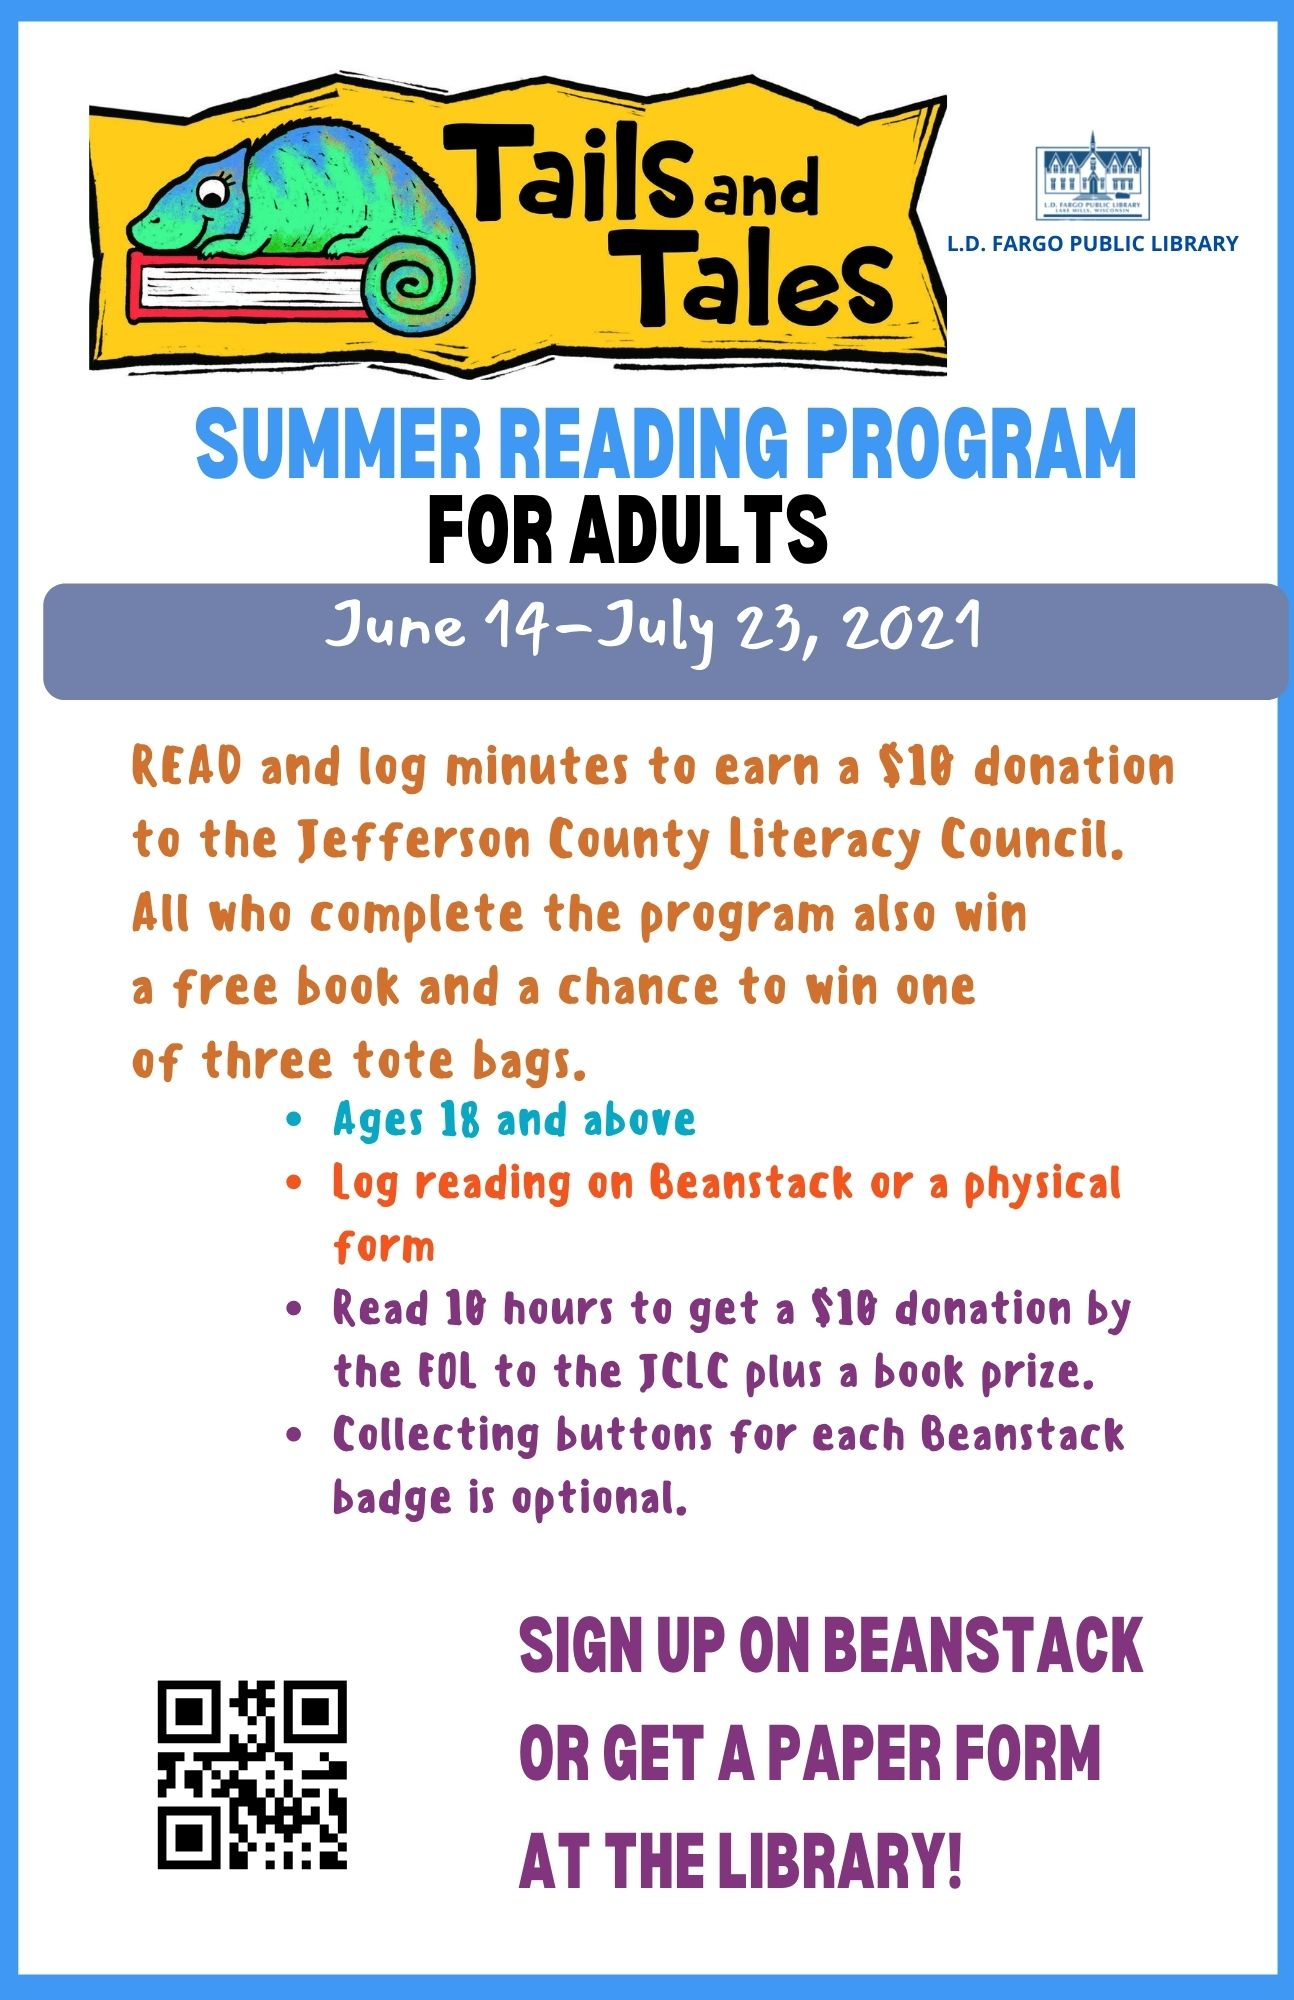 READ and log minutes to earn a $10 donation to the Jefferson County Literacy Council.  All who complete the program also win  a free book and a chance to win one  of three tote bags. Ages 18 and above Log reading on Beanstack or a physical form Read 10 hours to get a $10 donation by the FOL to the JCLC plus a book prize. Collecting buttons for each Beanstack badge is optional. Sign up on Beanstack or get a paper form at the library!